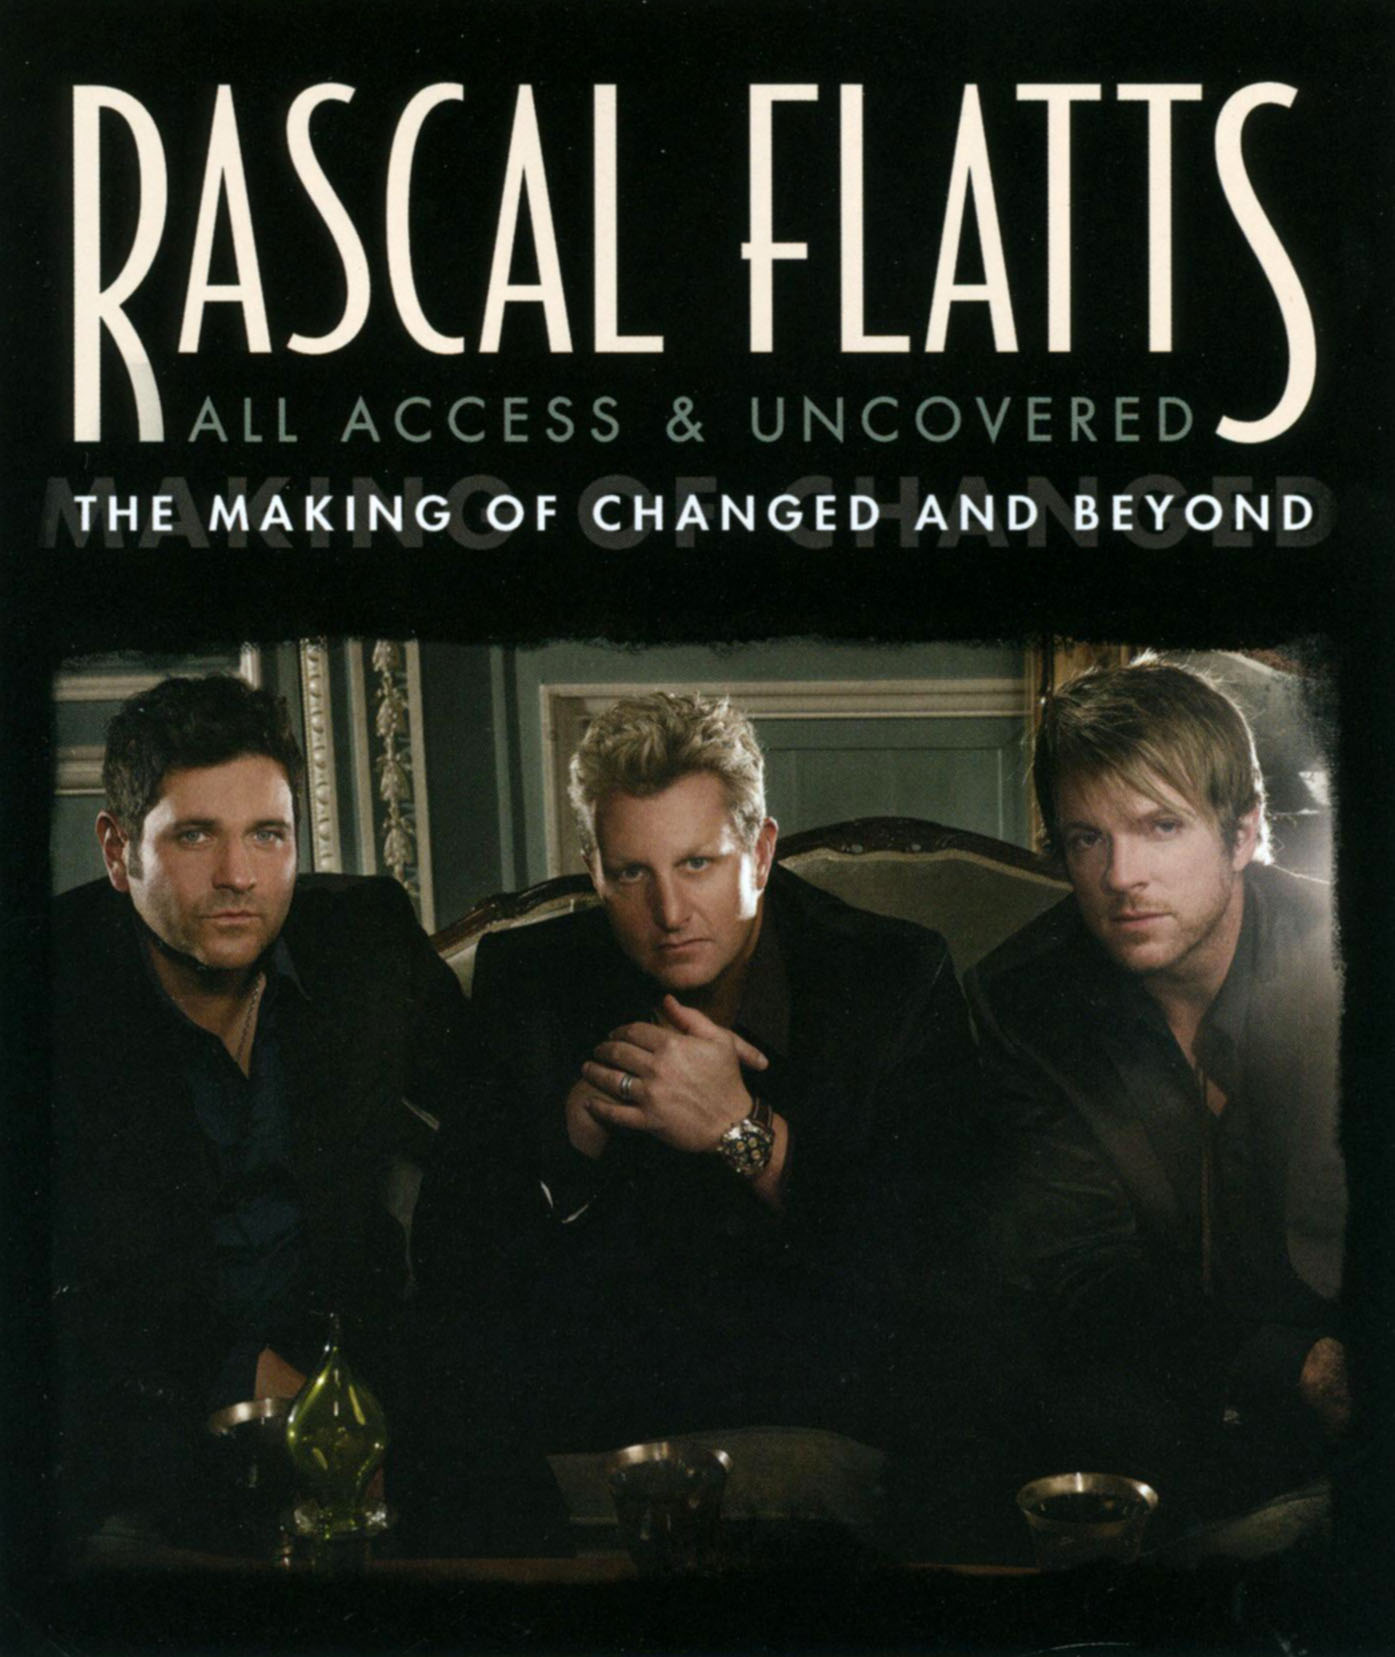 Rascal Flatts: All Access & Uncovered - The Making of Changed and Beyond